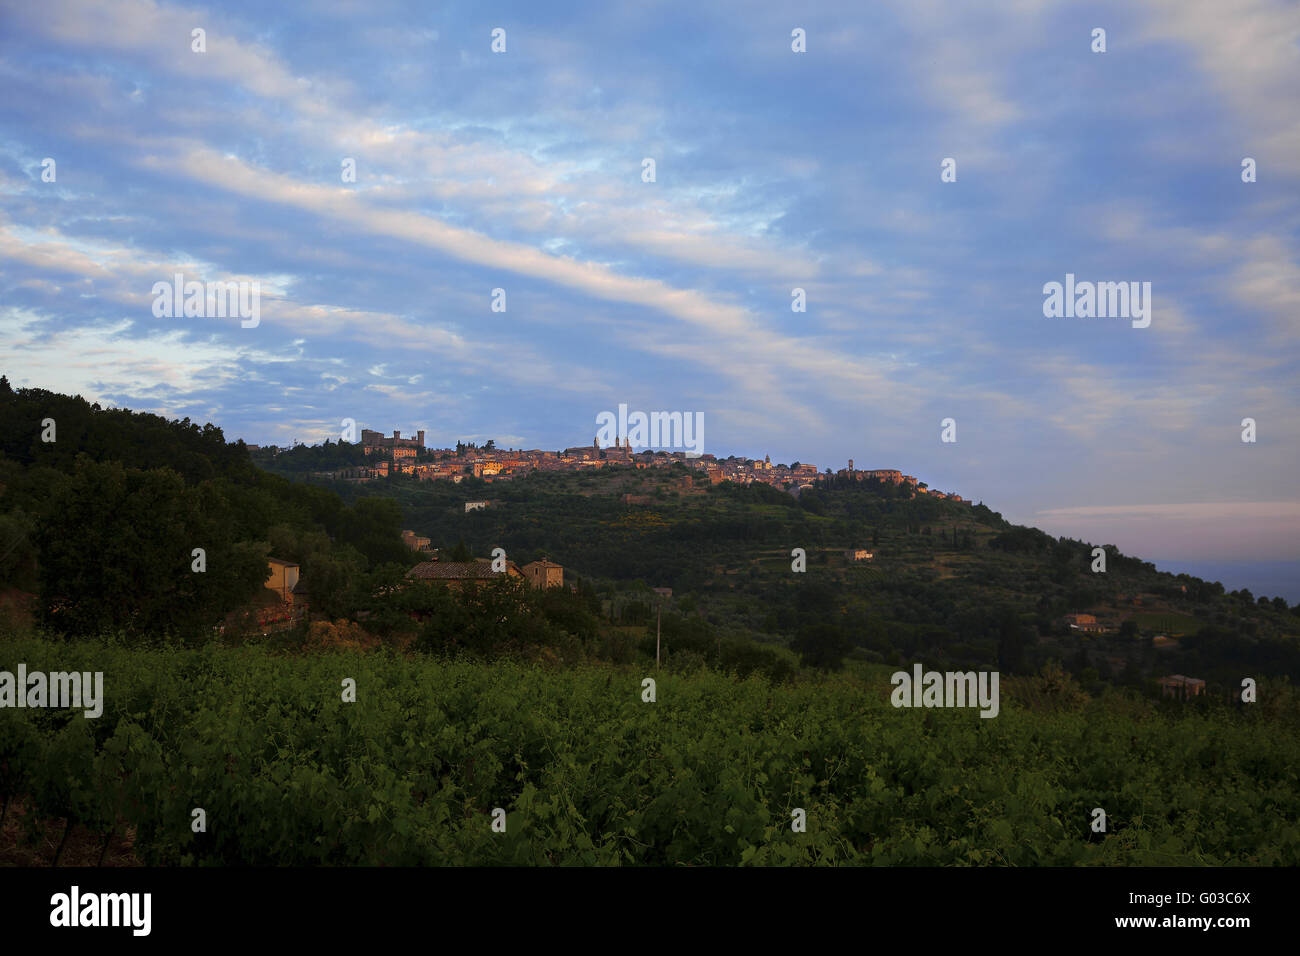 the famous wine town of Montalcino, Tuscany, Italy - Stock Image